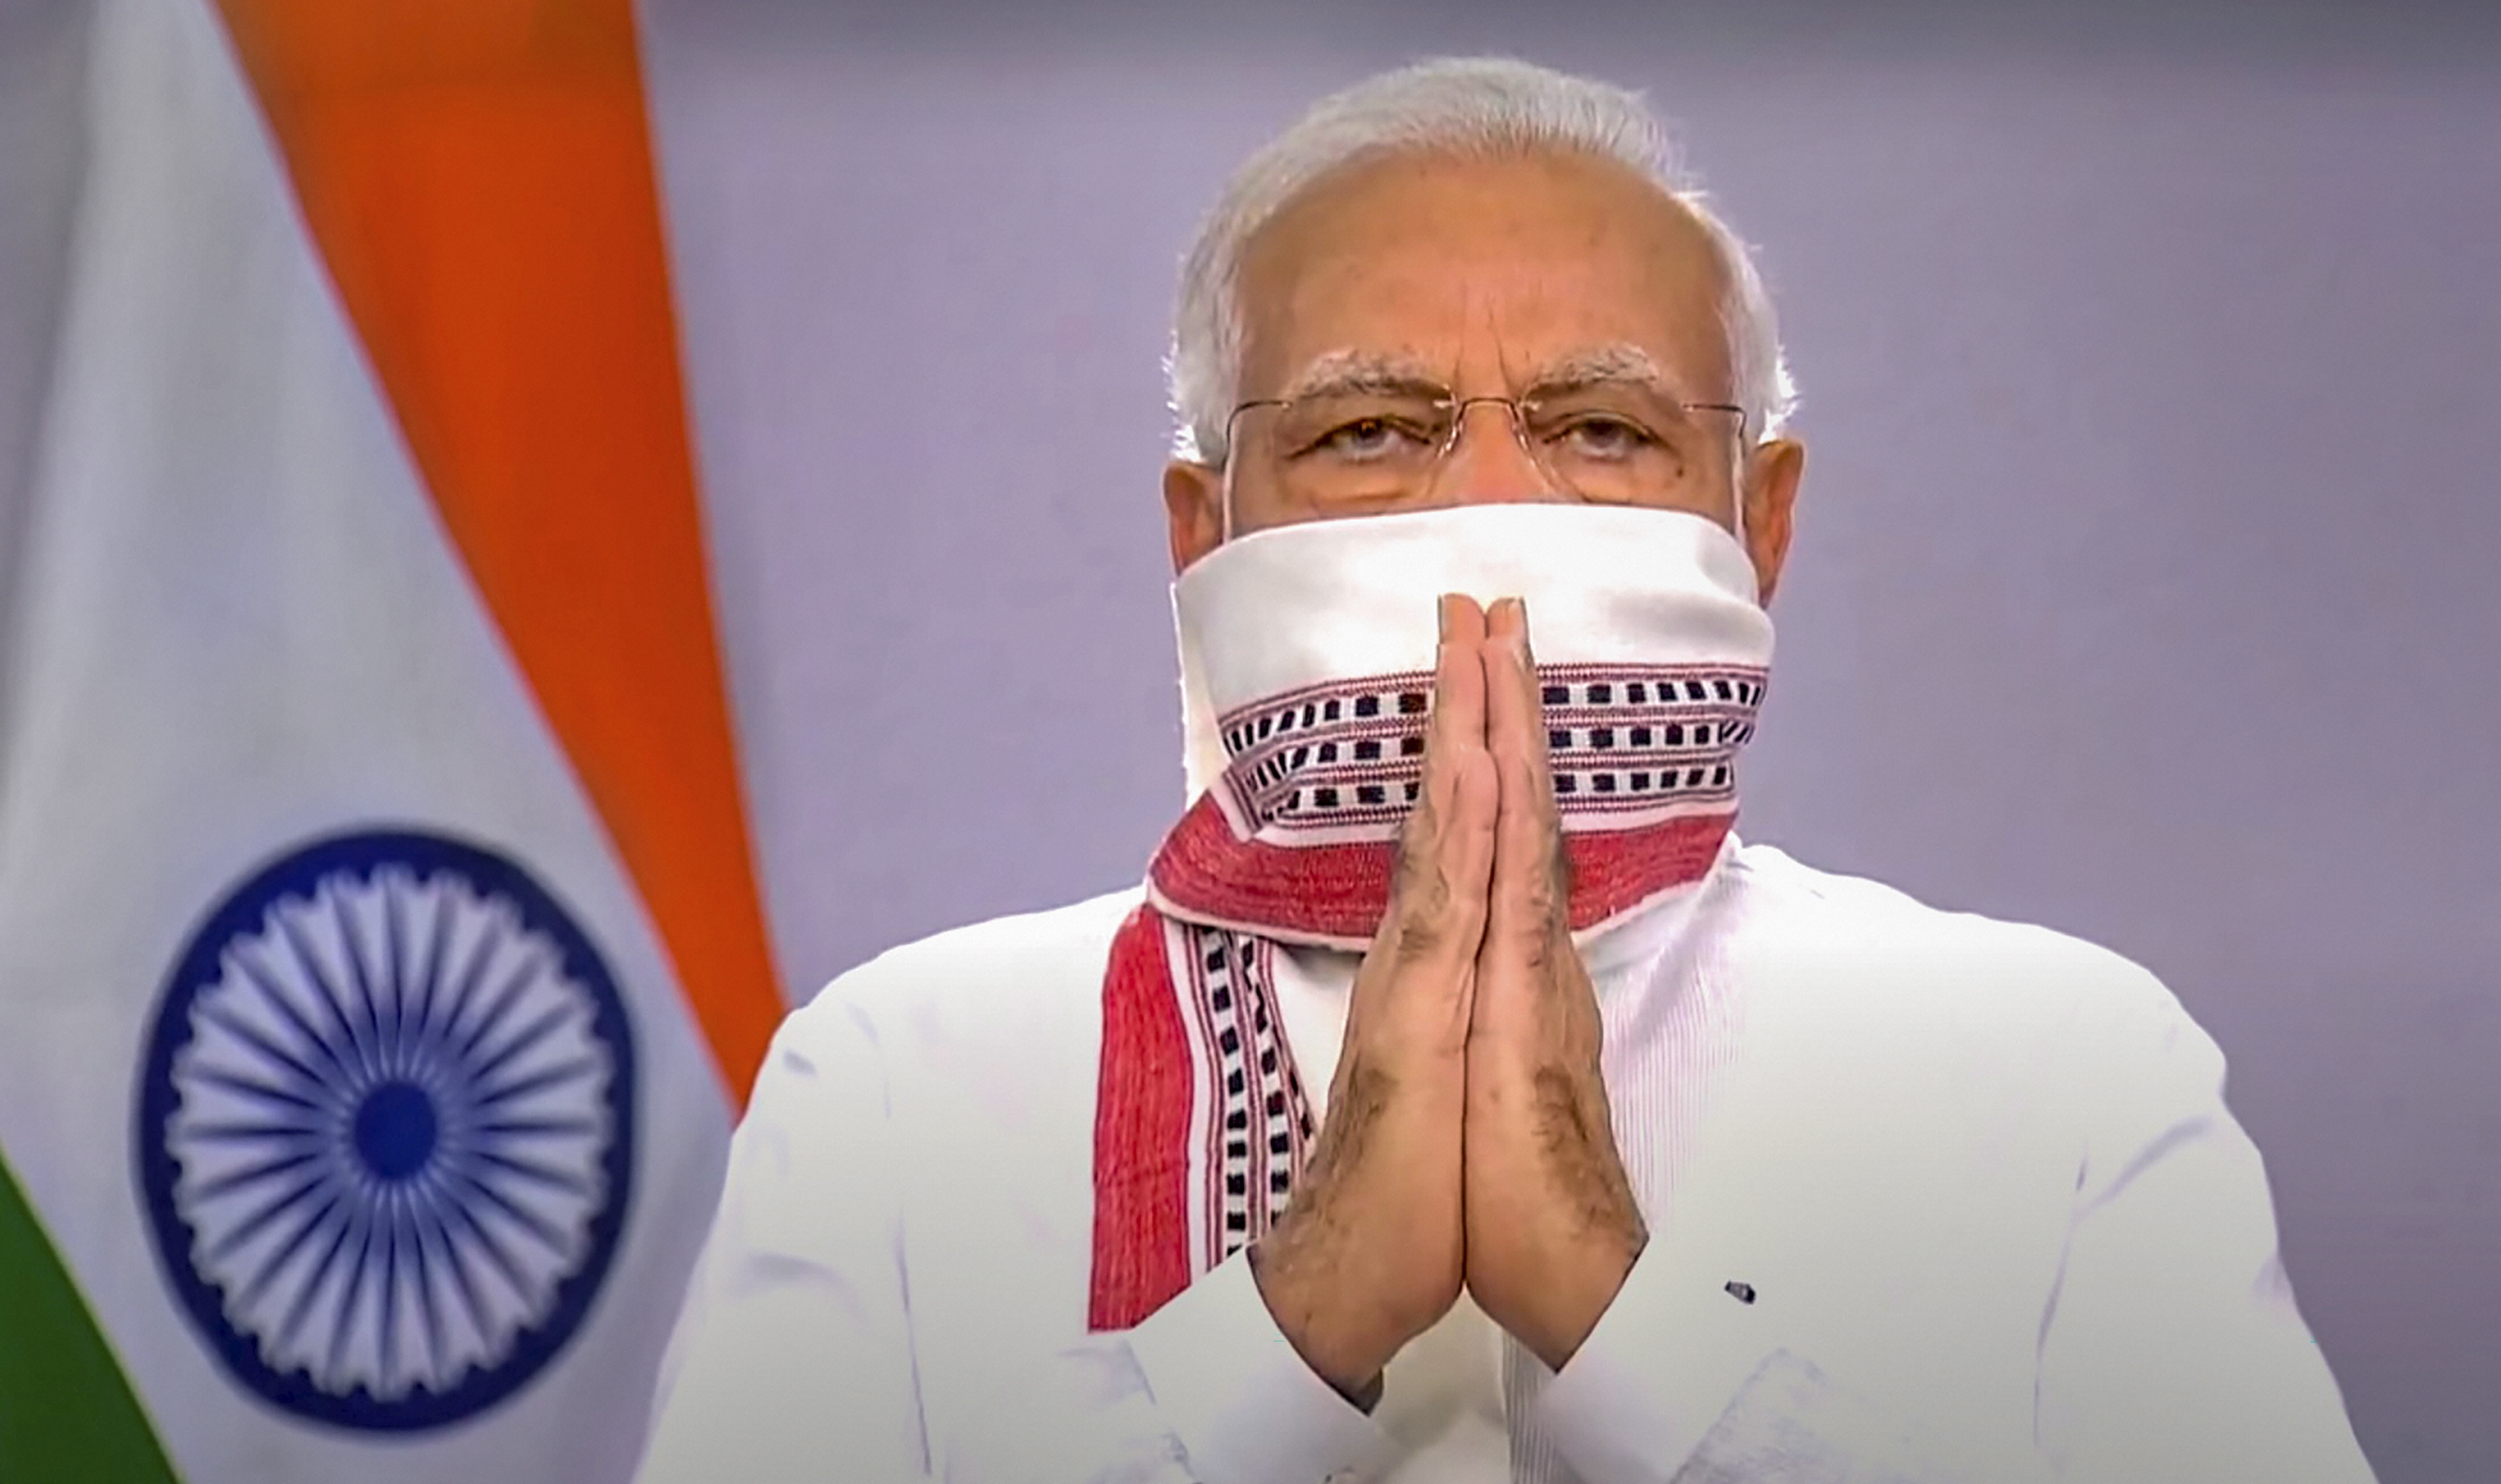 Prime Minister Narendra Modi changed the profile photo of his personal Twitter page moments after his address to the nation on the extension of coronavirus lockdown, Tuesday, April 14, 2020.